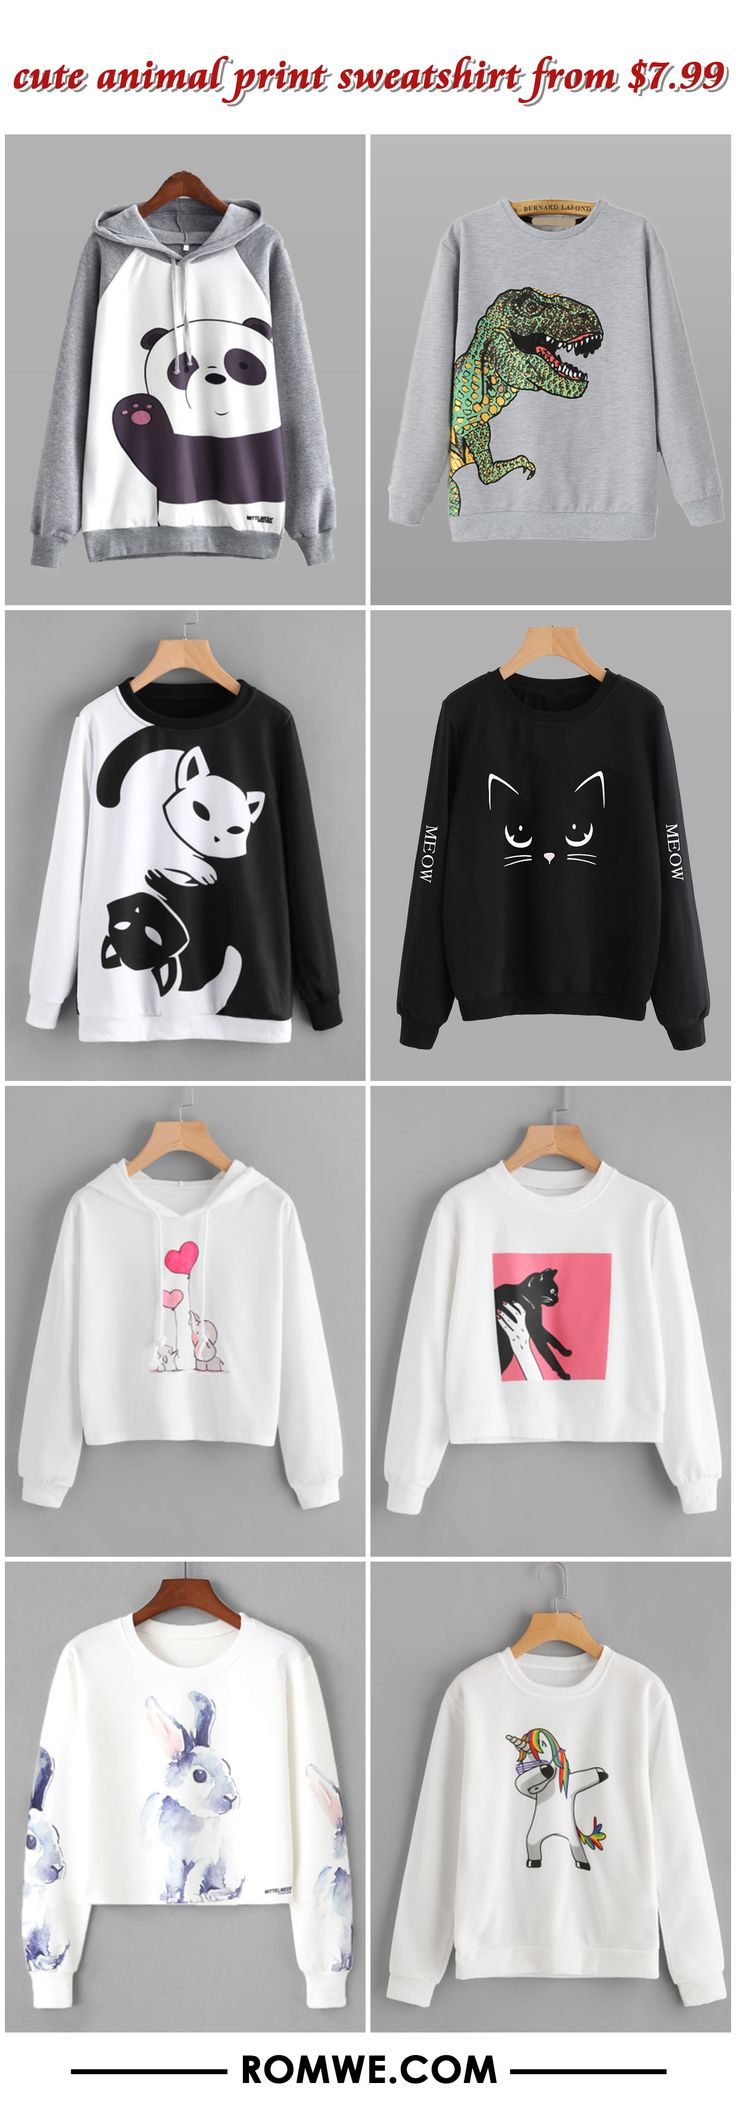 cute animal print sweatshirt - romwe.com